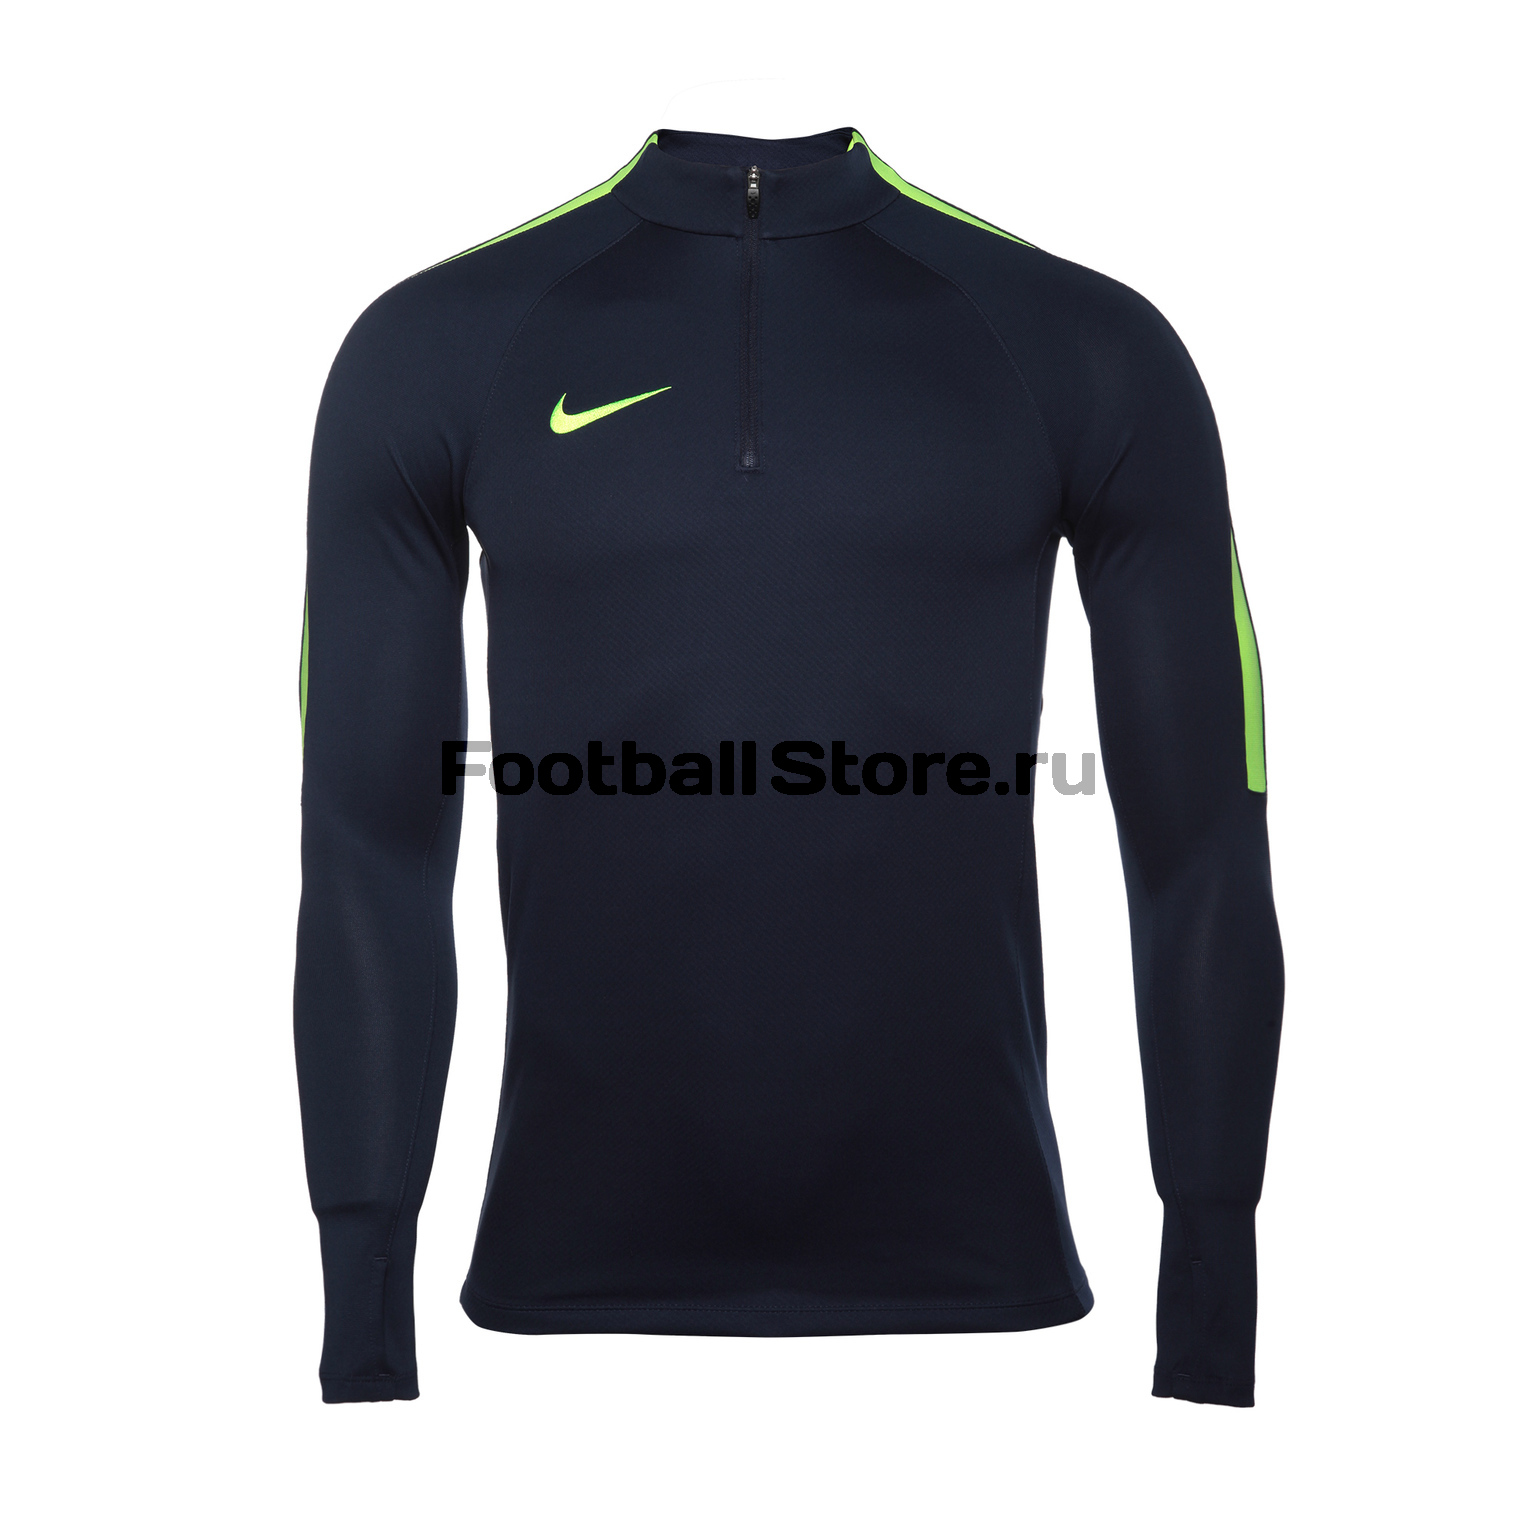 Свитер тренировочный Nike M NK Dry SQD17 Dril Top LS 831569-451 arsuxeo 60017 quick dry women cycling running long sleeves jersey top fluorescent green size m